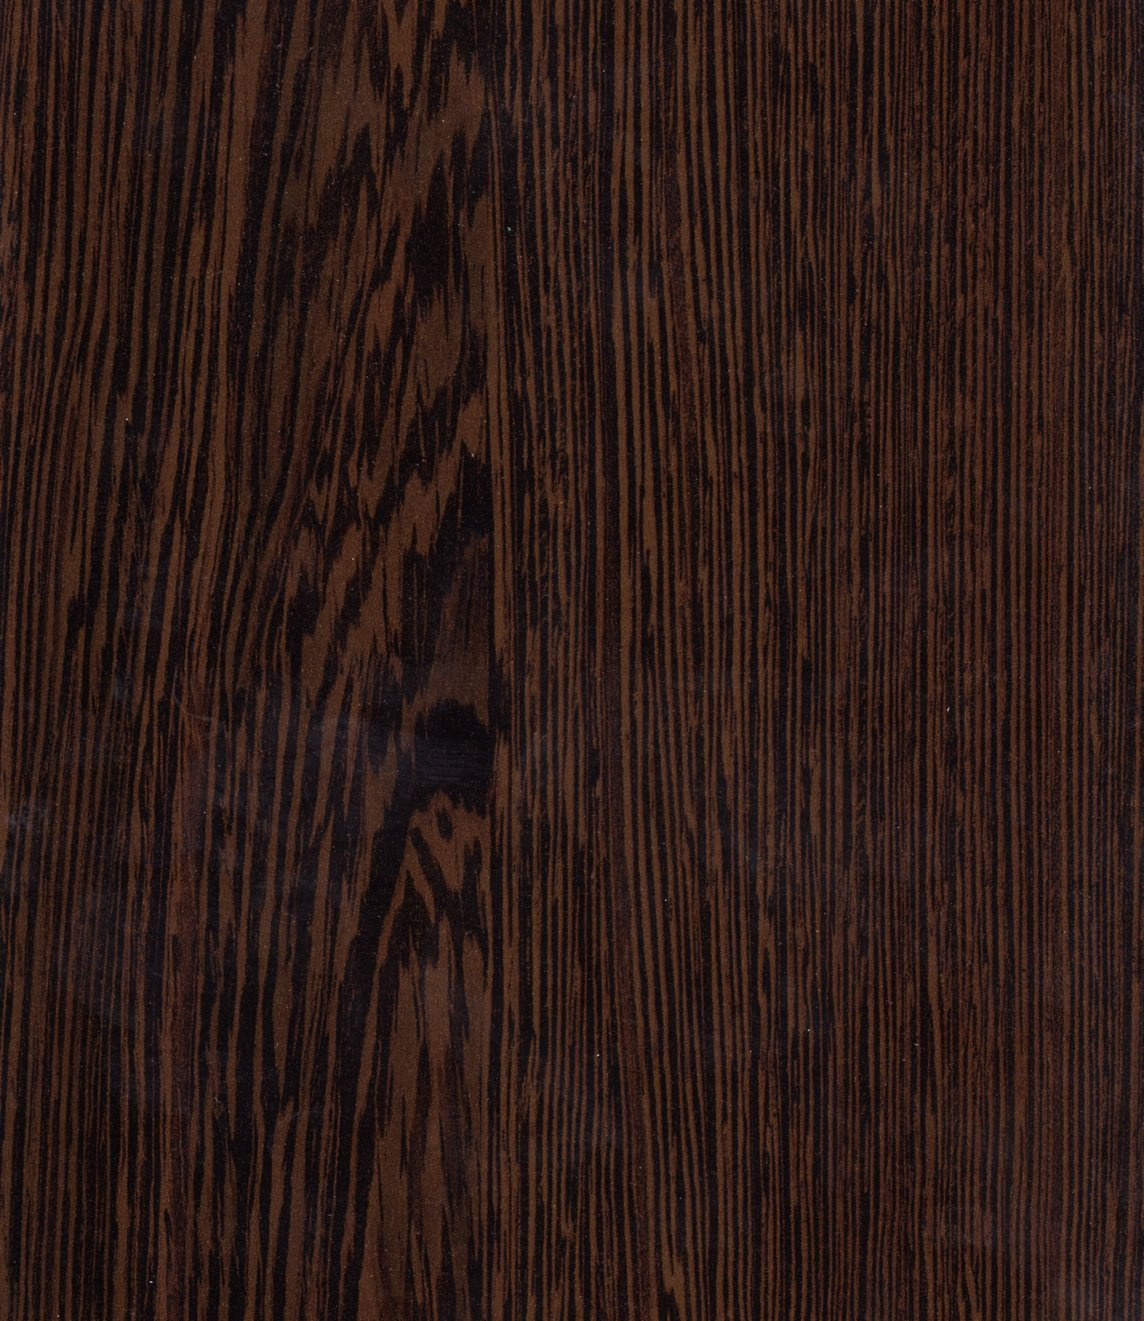 Wenge Pictures to pin on Pinterest